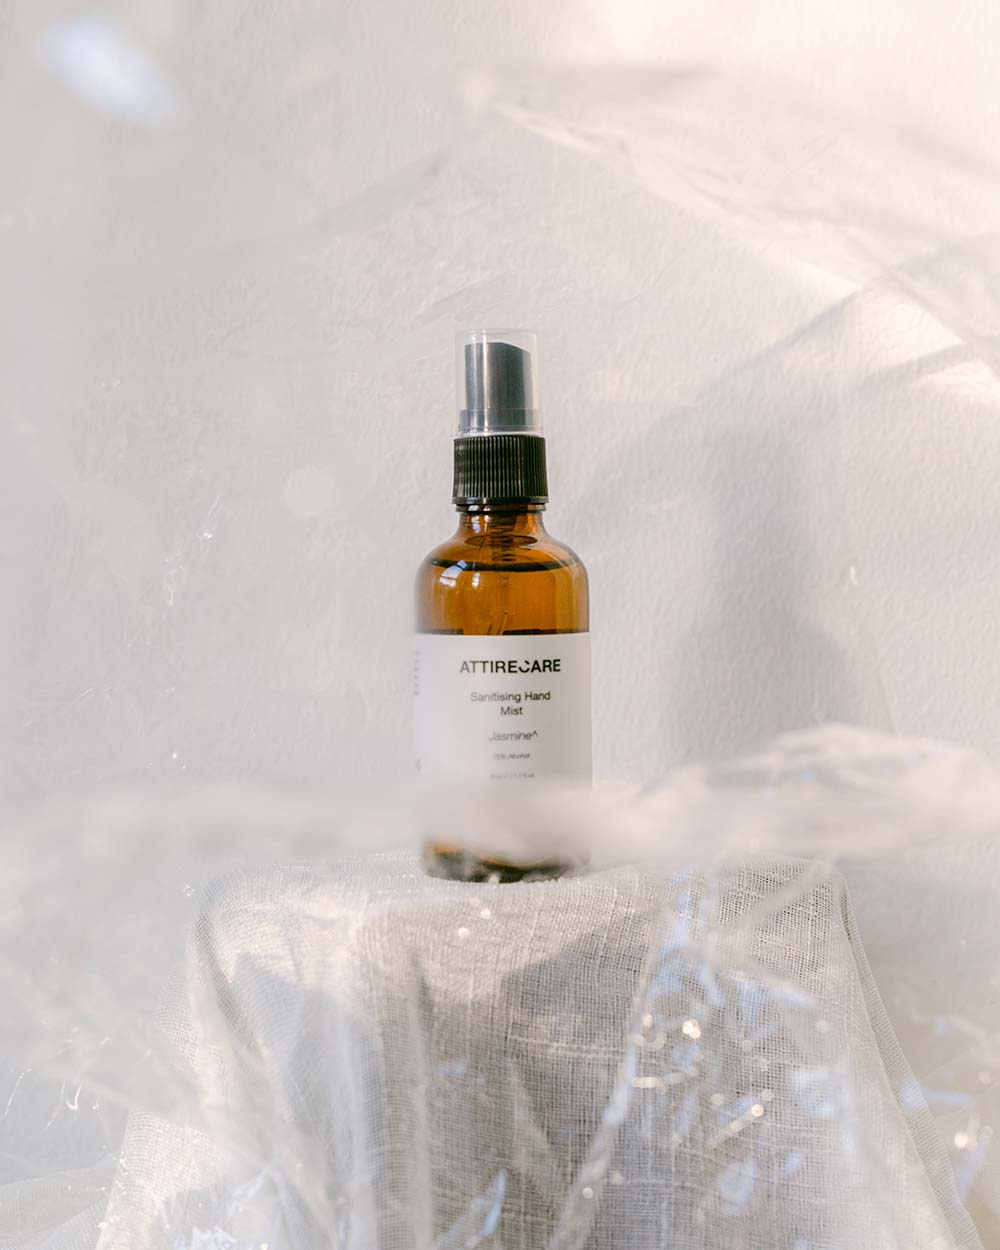 Styled image of Attirecare Sanitising Hand Mist